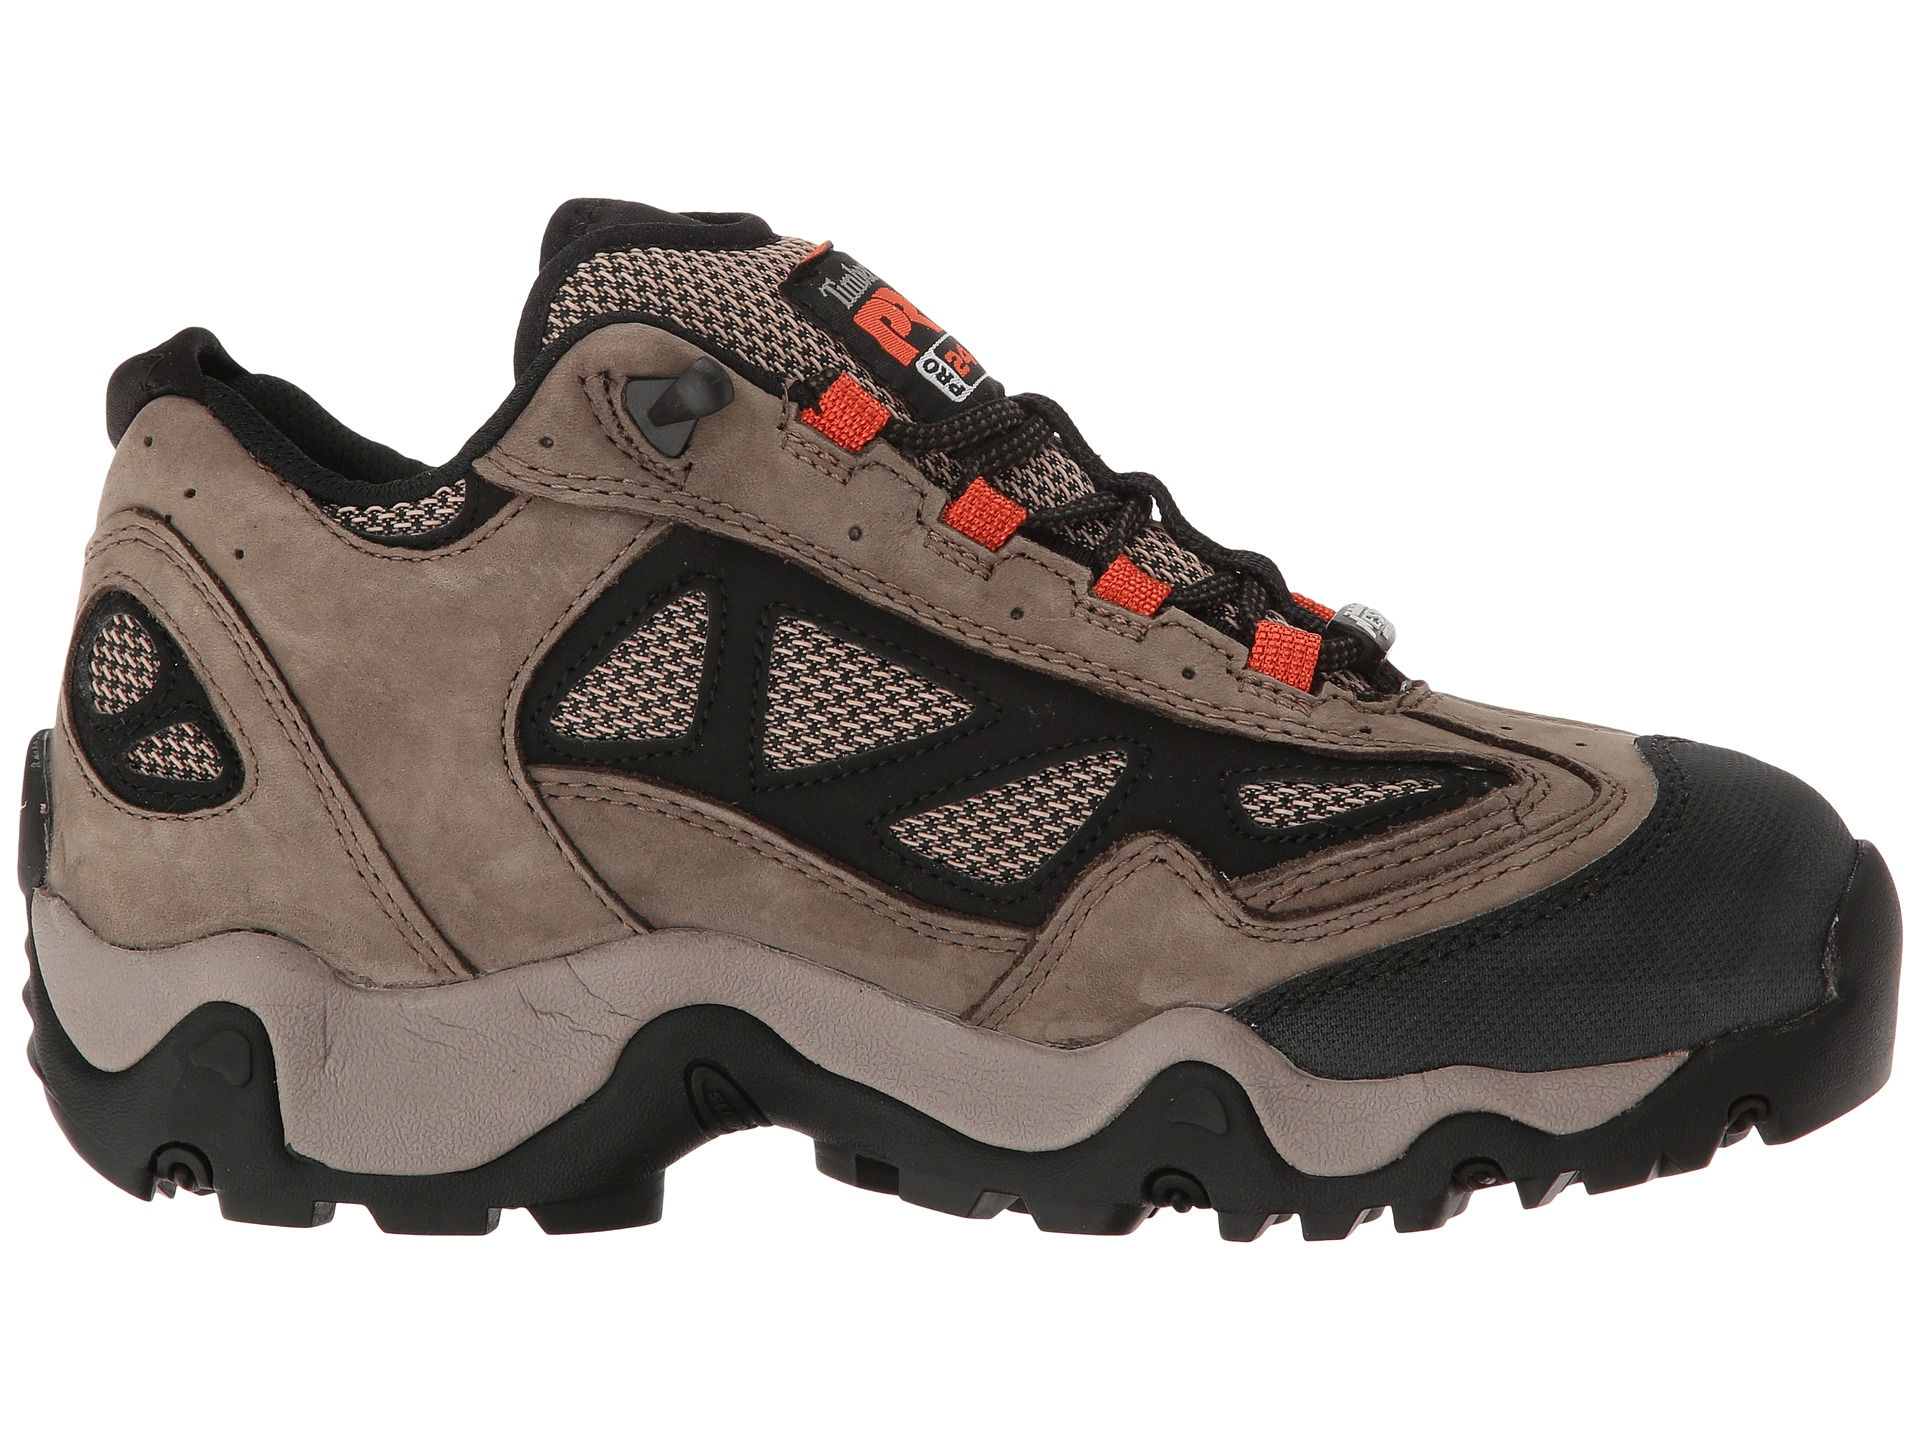 2014 Most Comfortable Work Shoes Lightweight Safety Trainers Steel